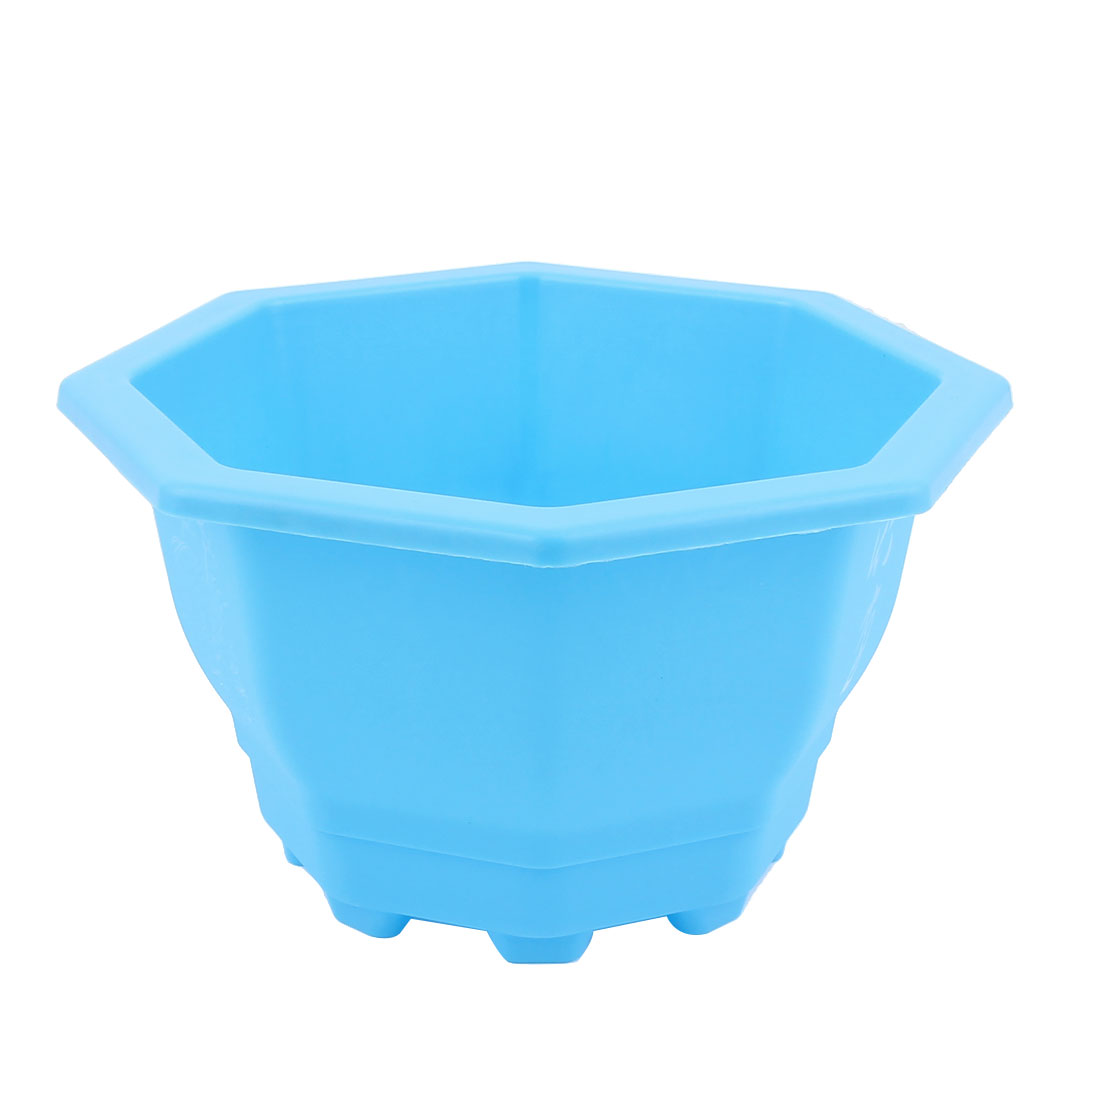 Plastic Octagon Shaped Office Home Garden Window Decor Plant Flower Pot Blue